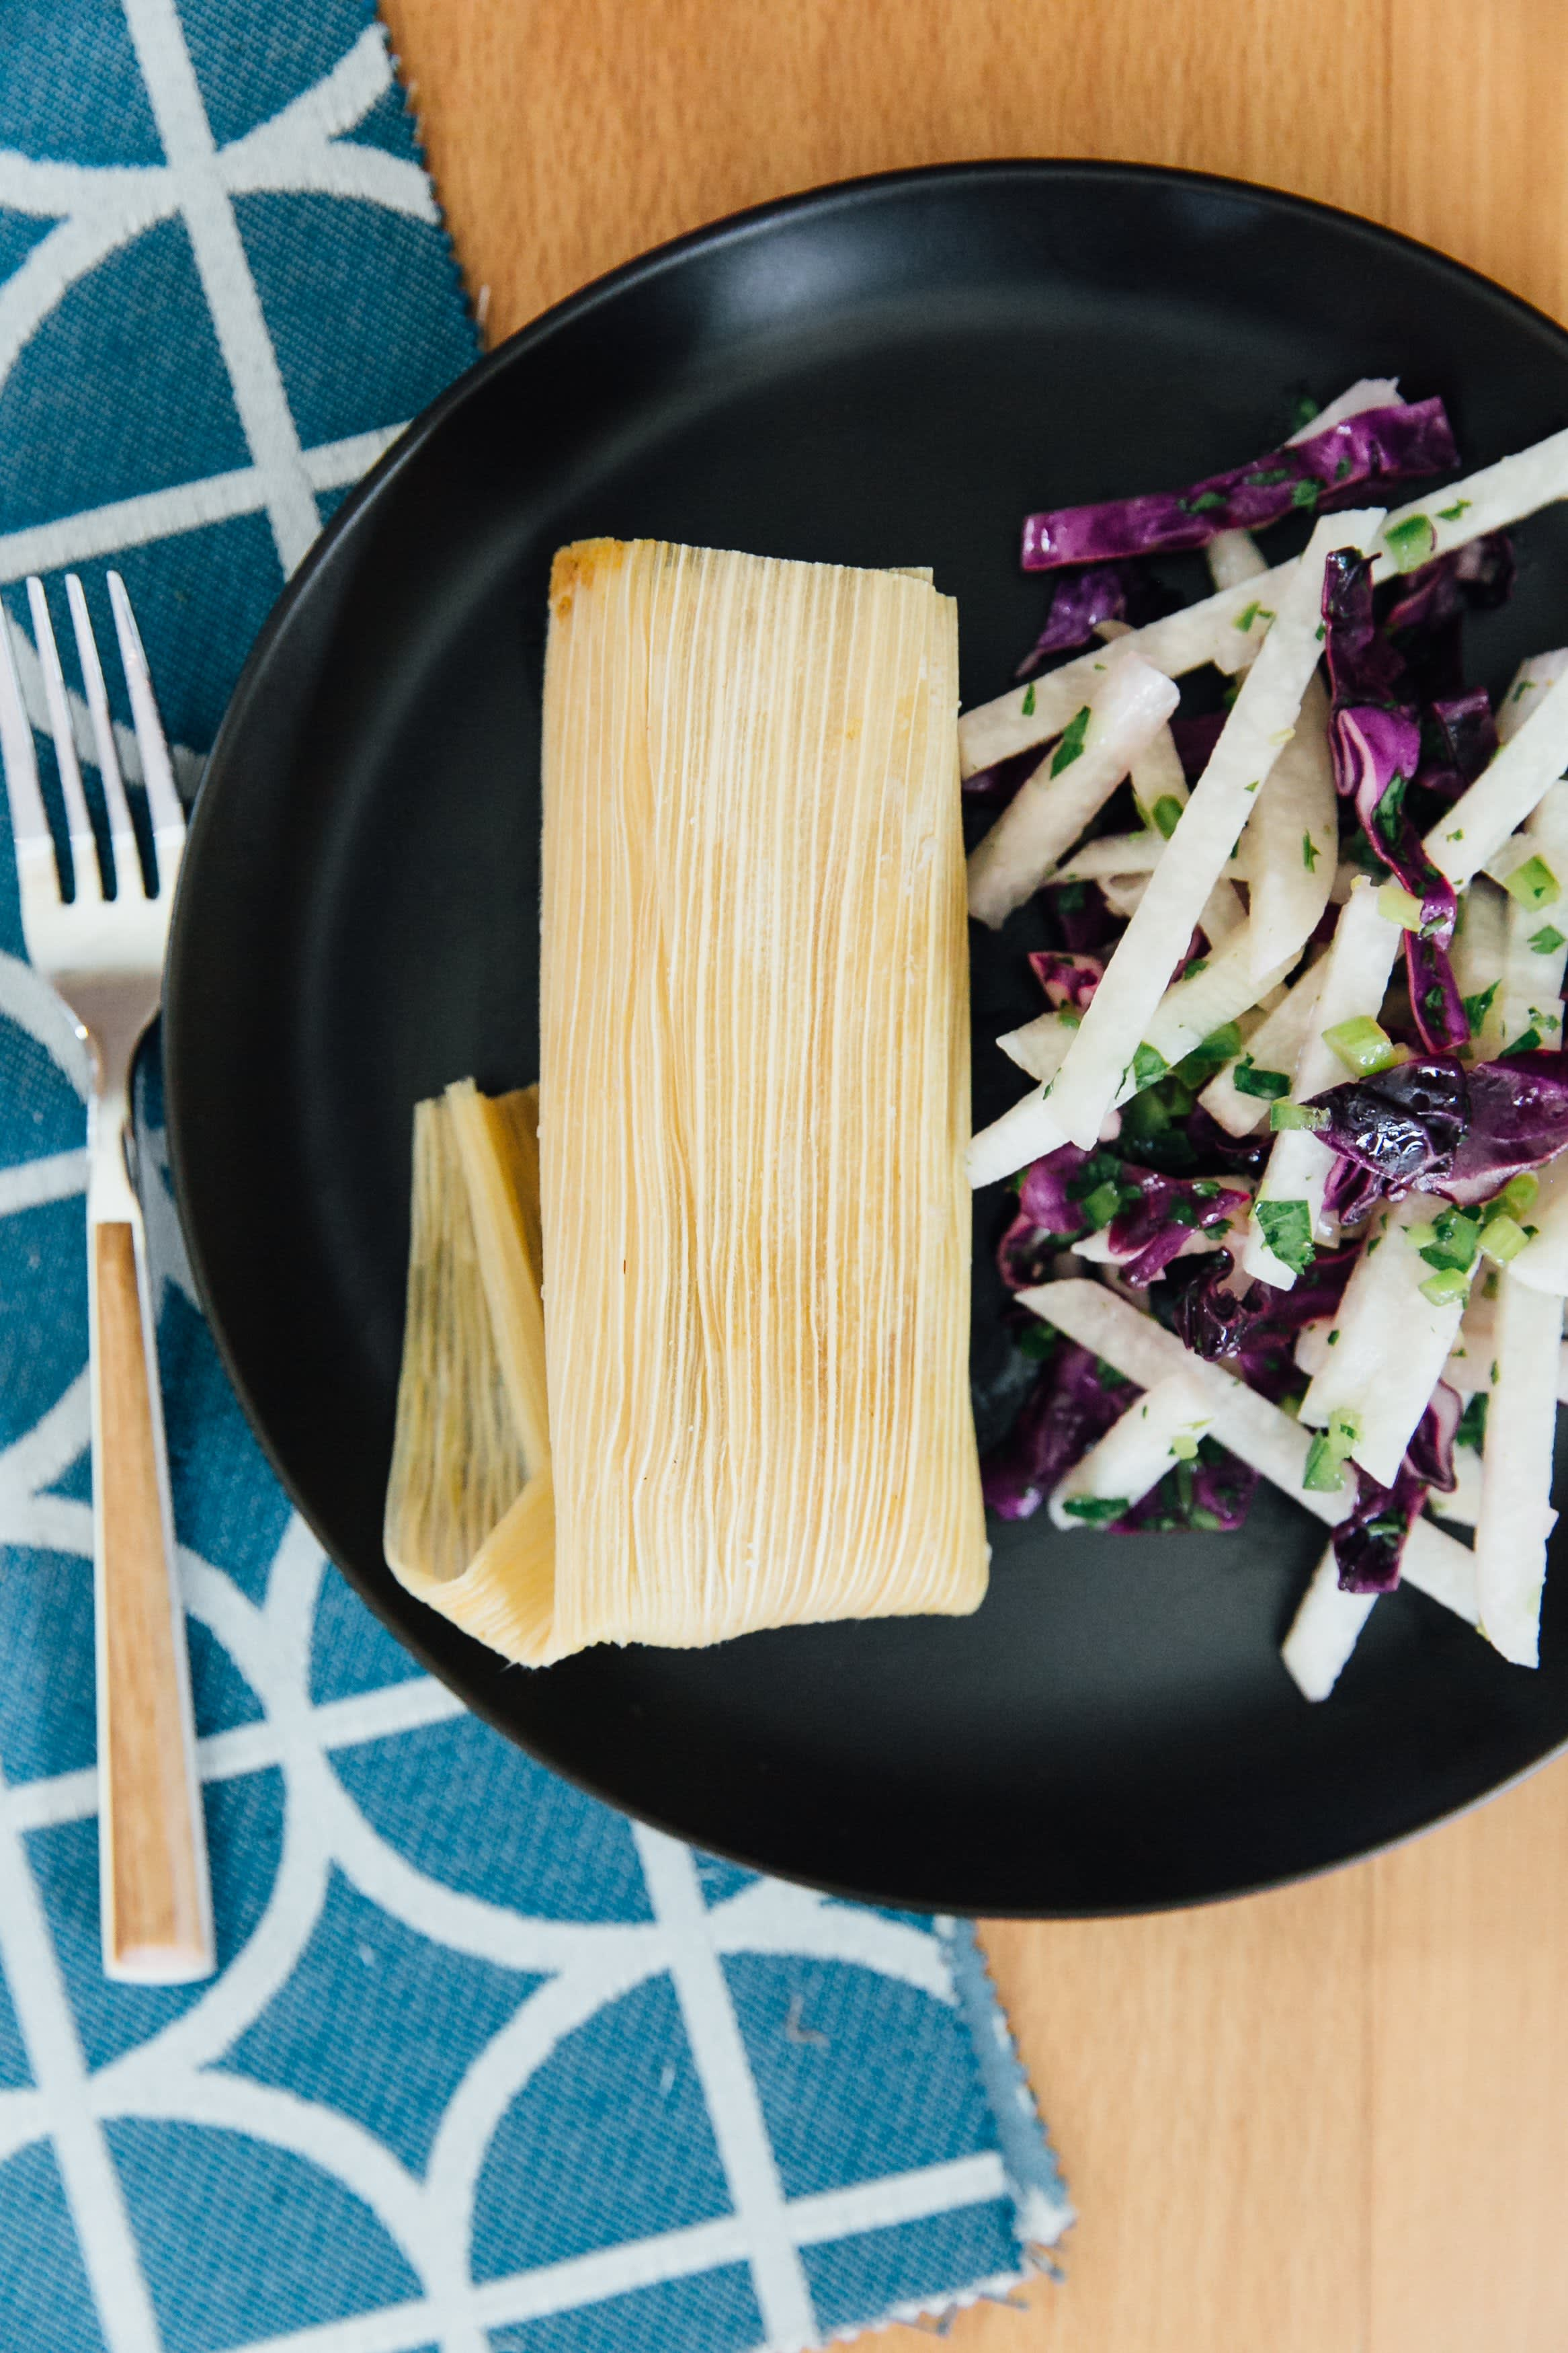 Tamale and jicama slaw